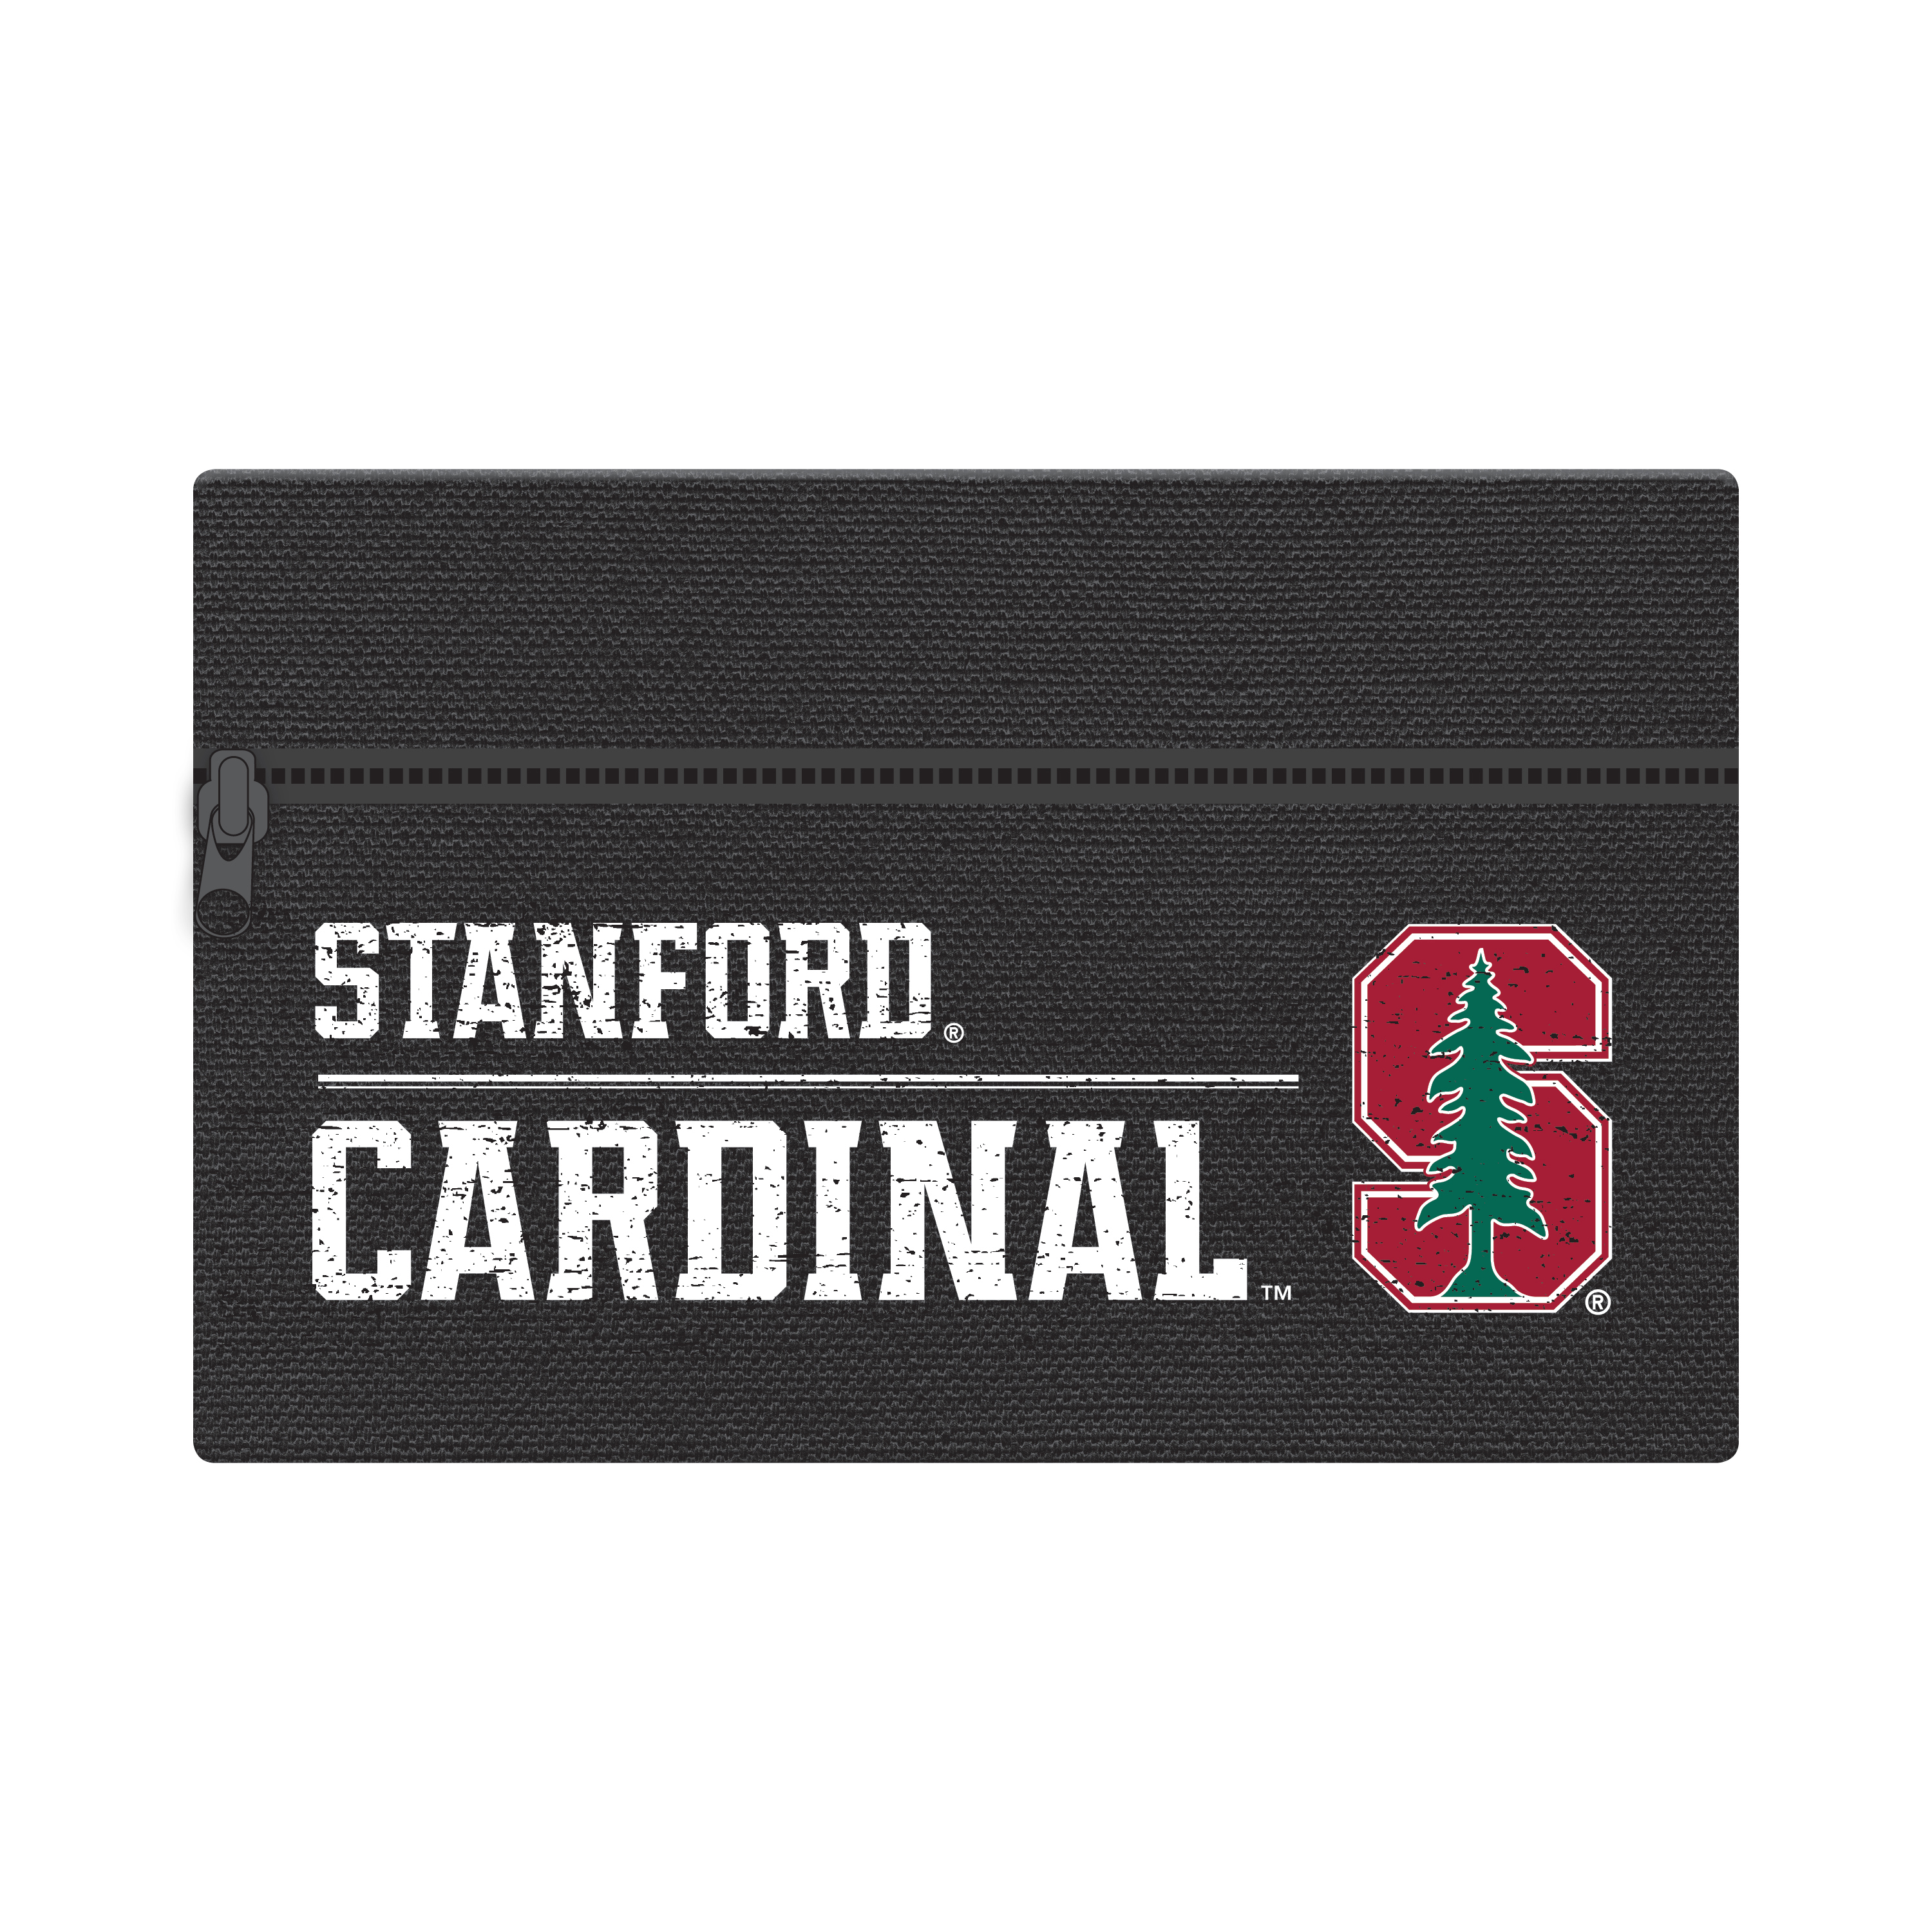 "NCAA Stanford Cardinals Zippered Cotton Canvas Pencil Pouch, 7.5"" by 4.625"""